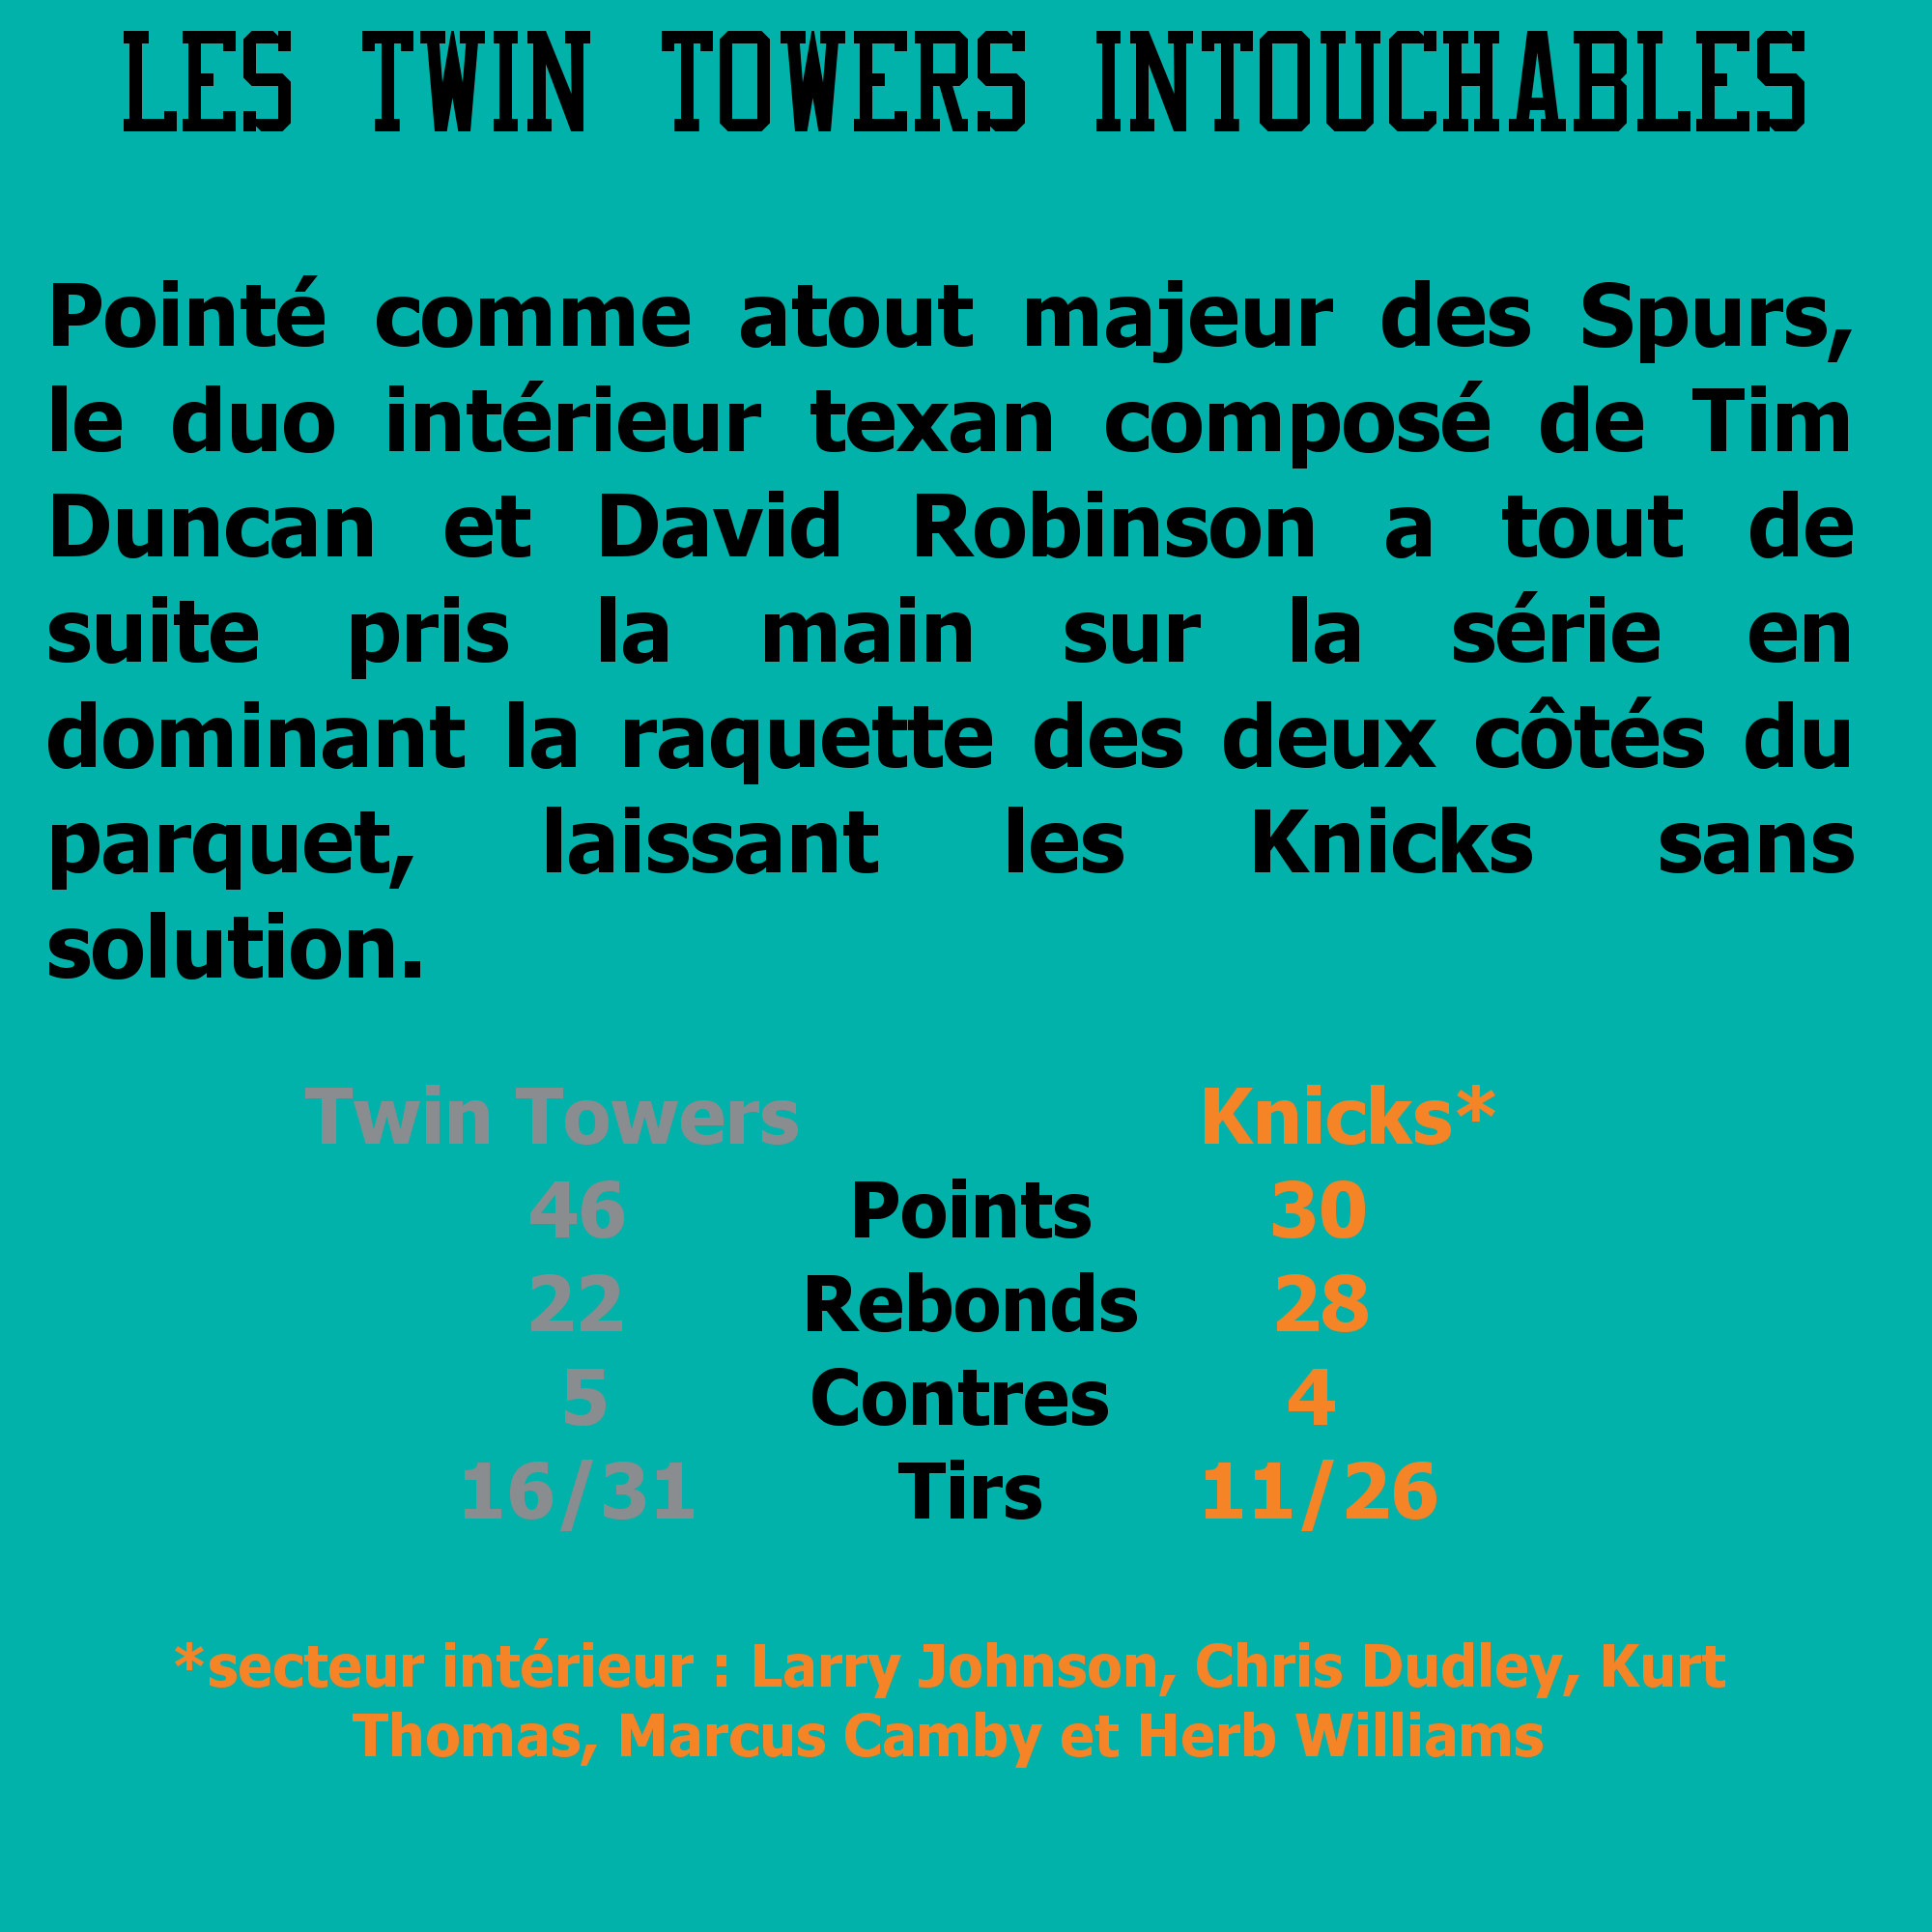 game 1 Spurs Knicks : Twin Towers